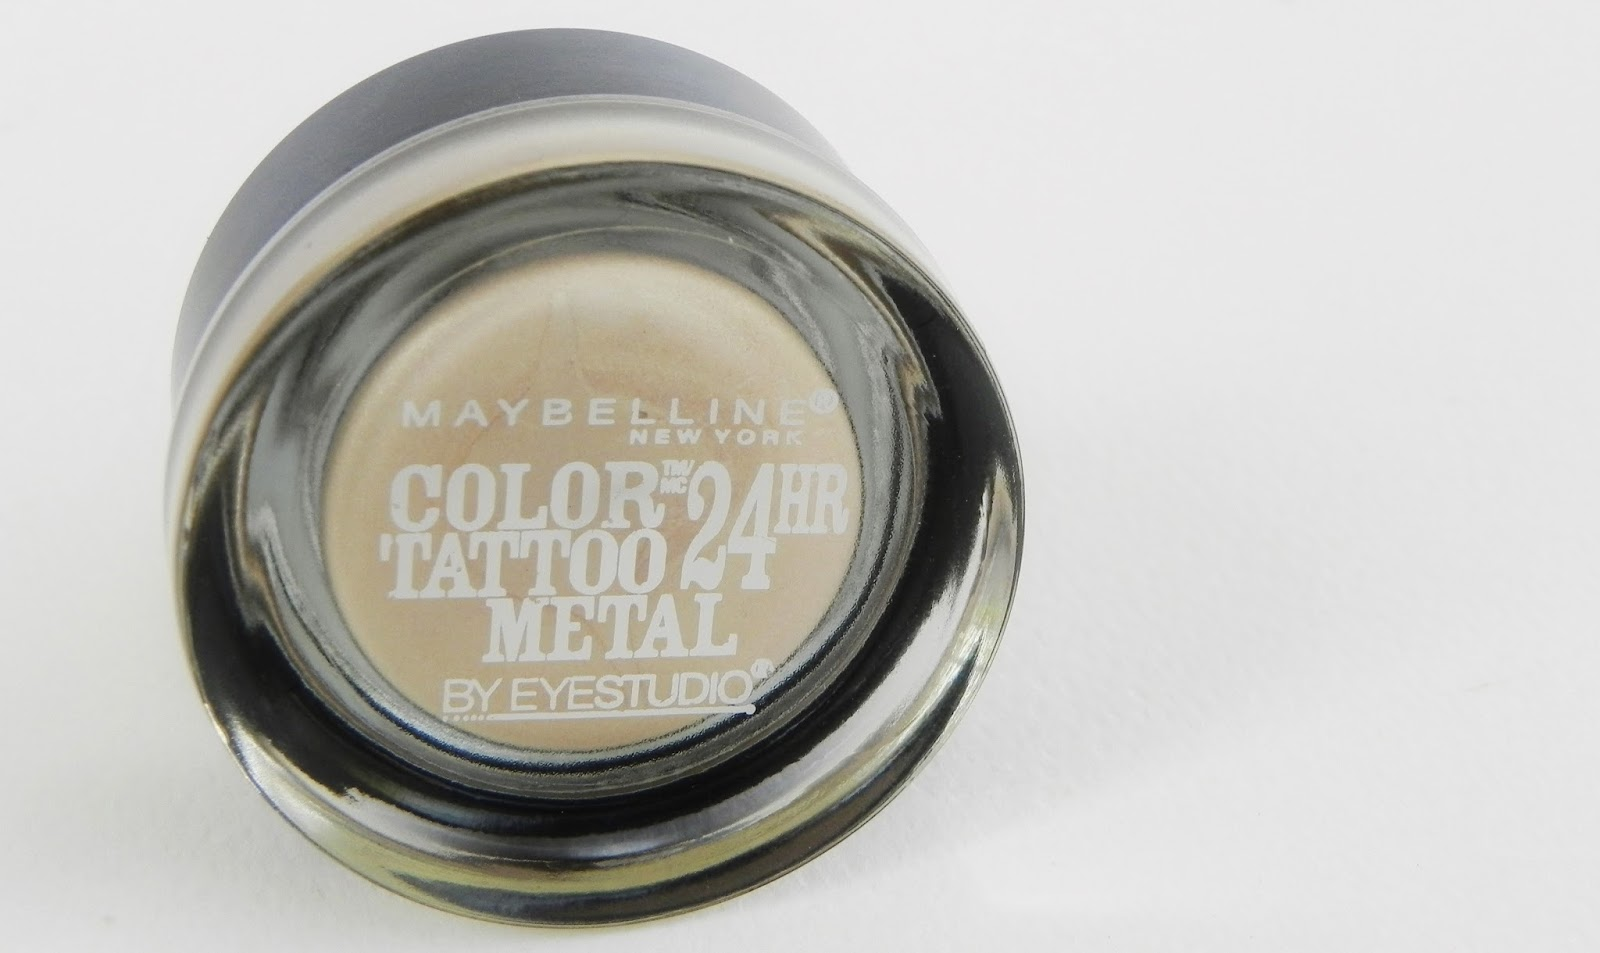 maybelline color tattoo metal 24hr cream eyeshadow review swatch barely branded